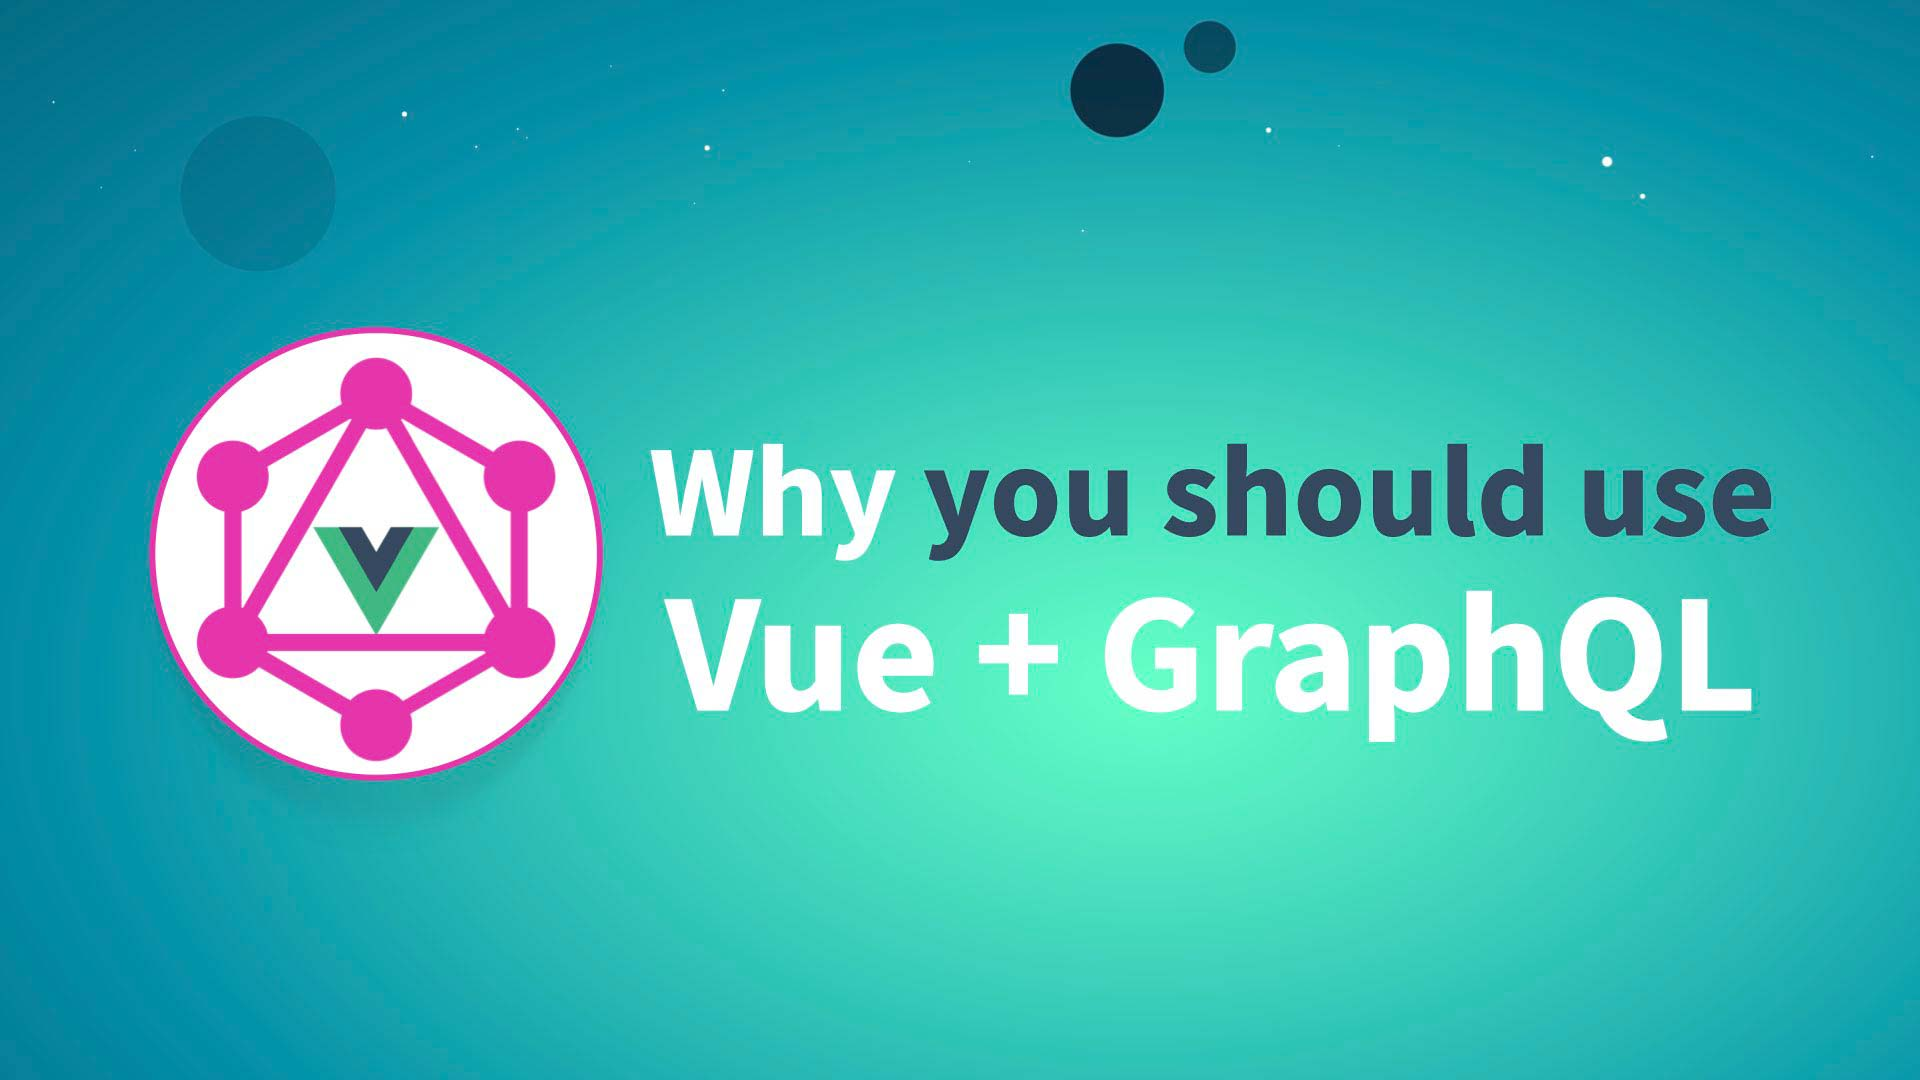 Part 1: Why you should use Vue + GraphQL